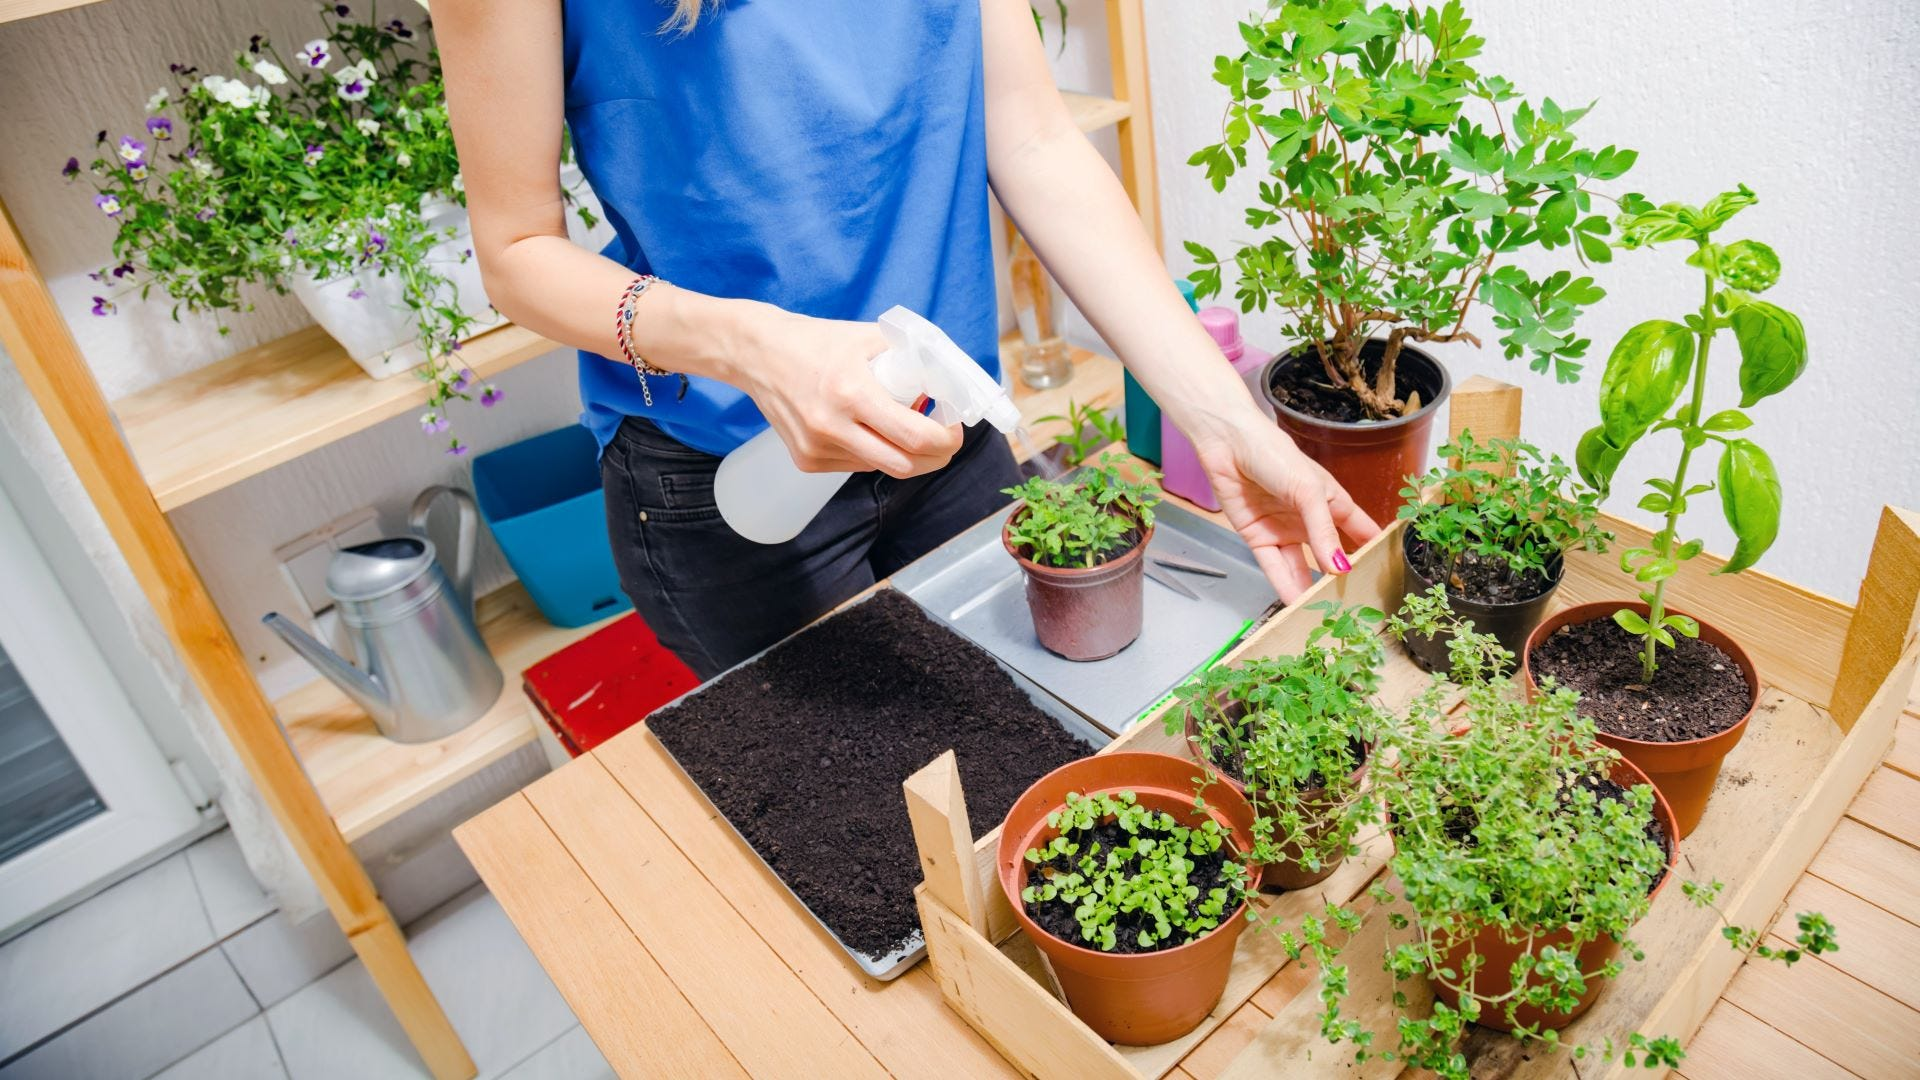 A woman spritzing herb plants with a spray bottle.